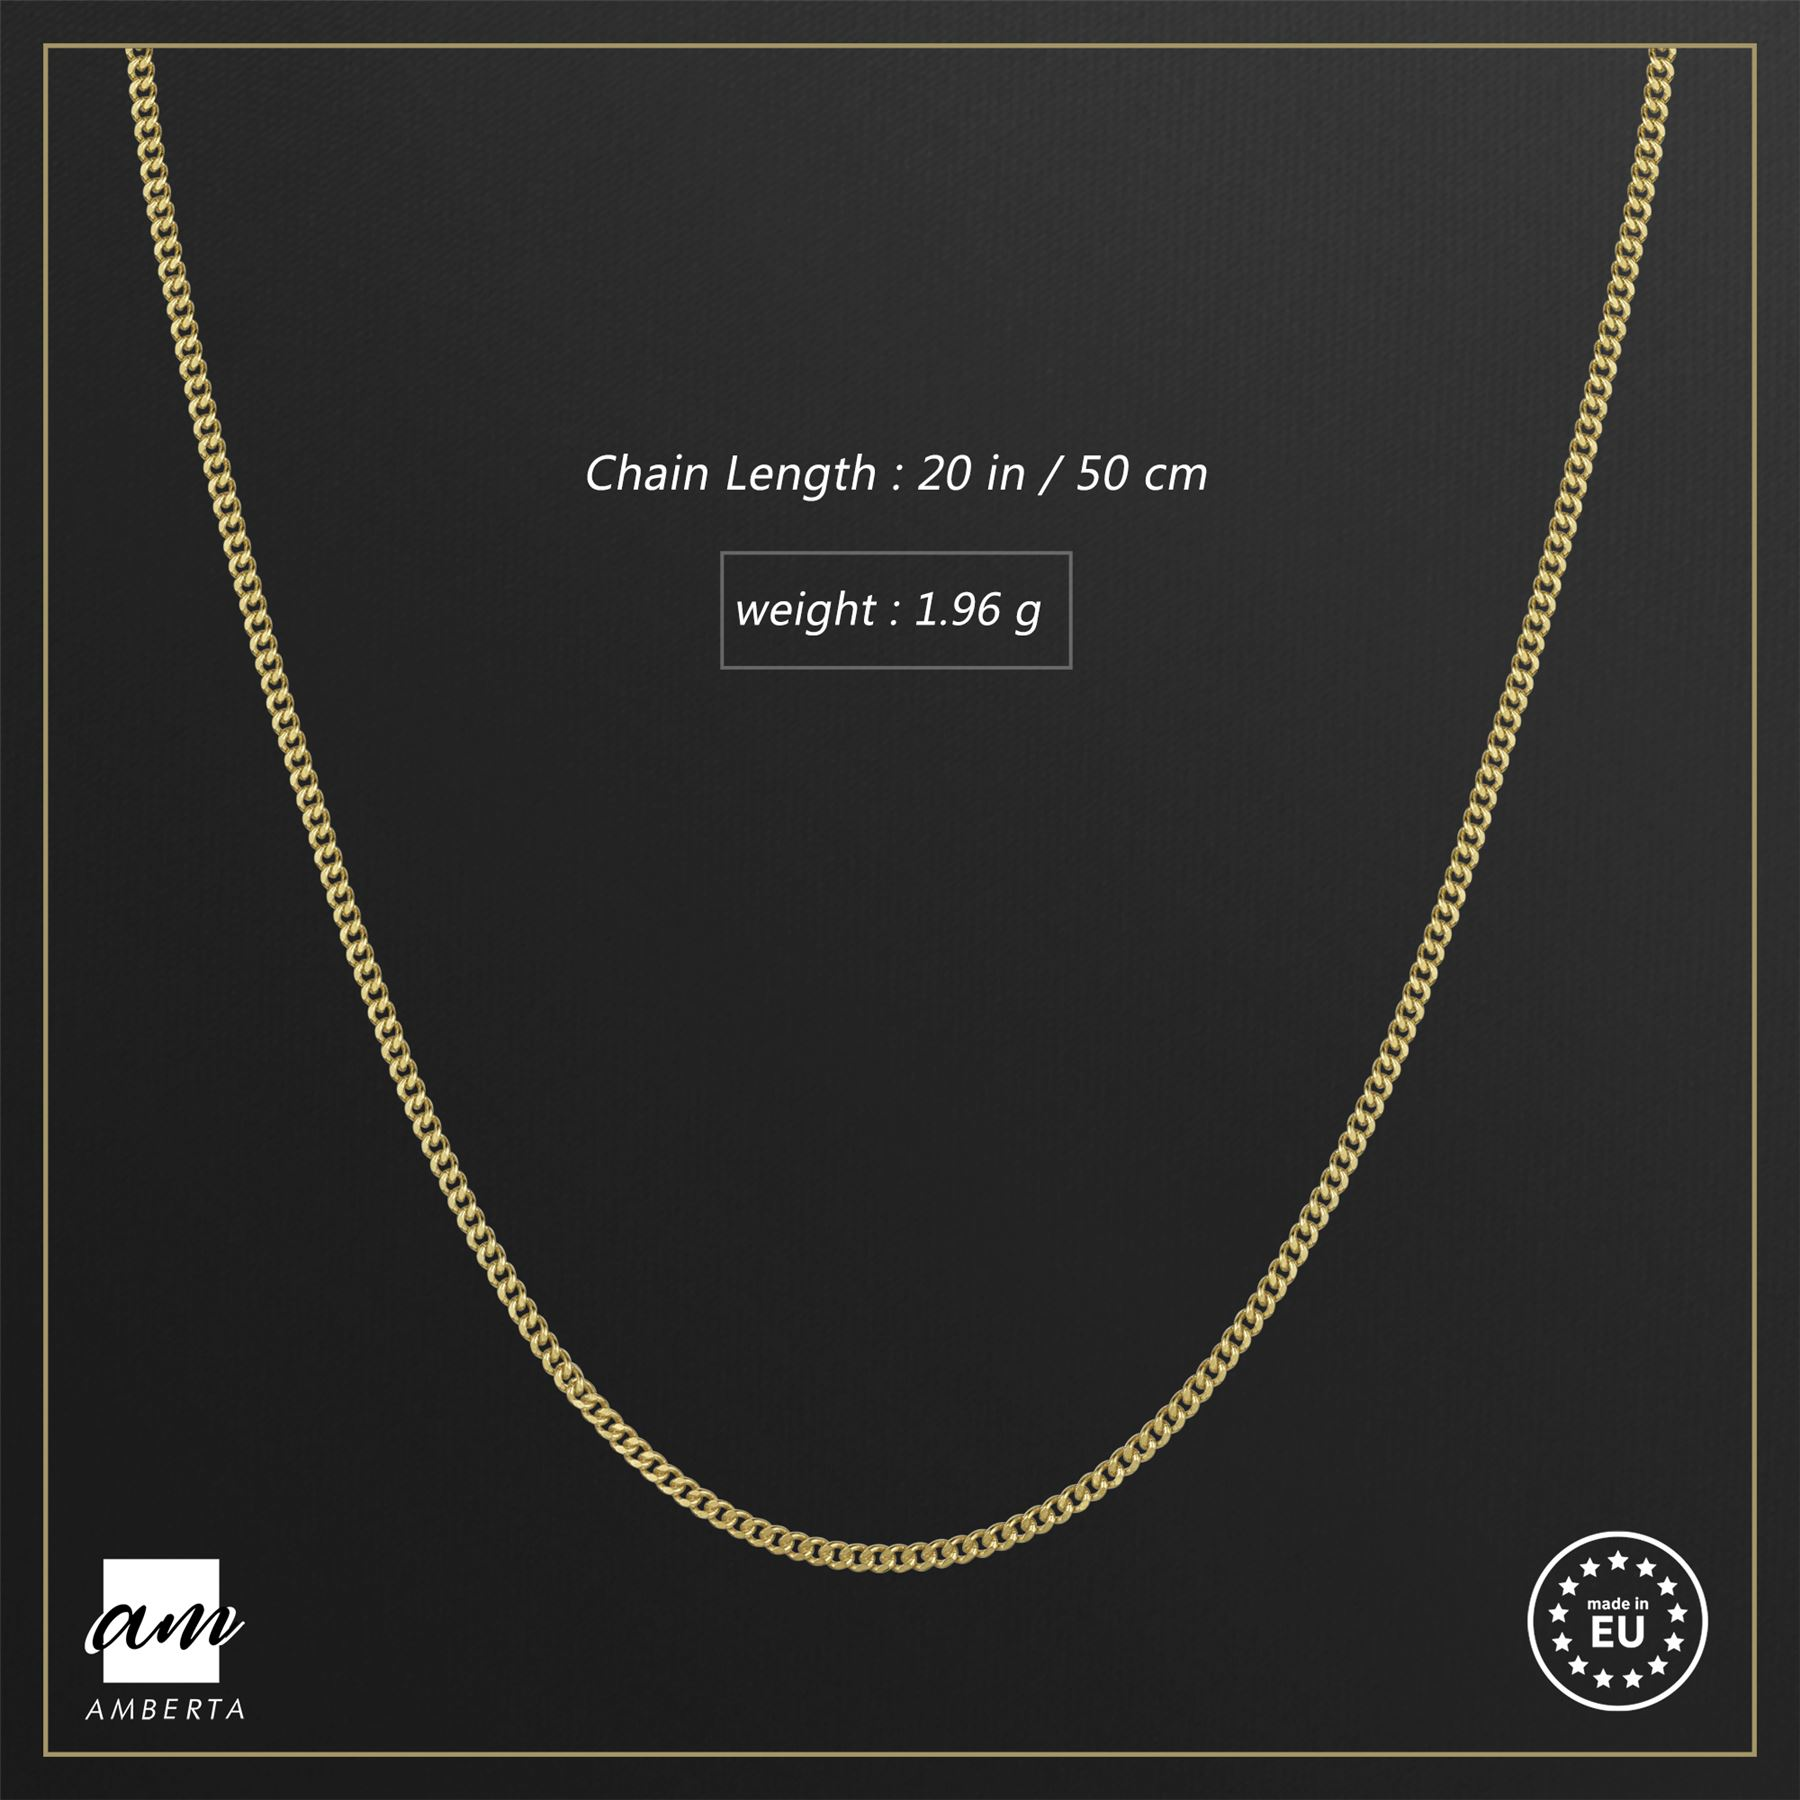 Amberta-Genuine-Gold-Plated-on-Real-925-Sterling-Silver-Necklace-Chain-Italy 縮圖 12